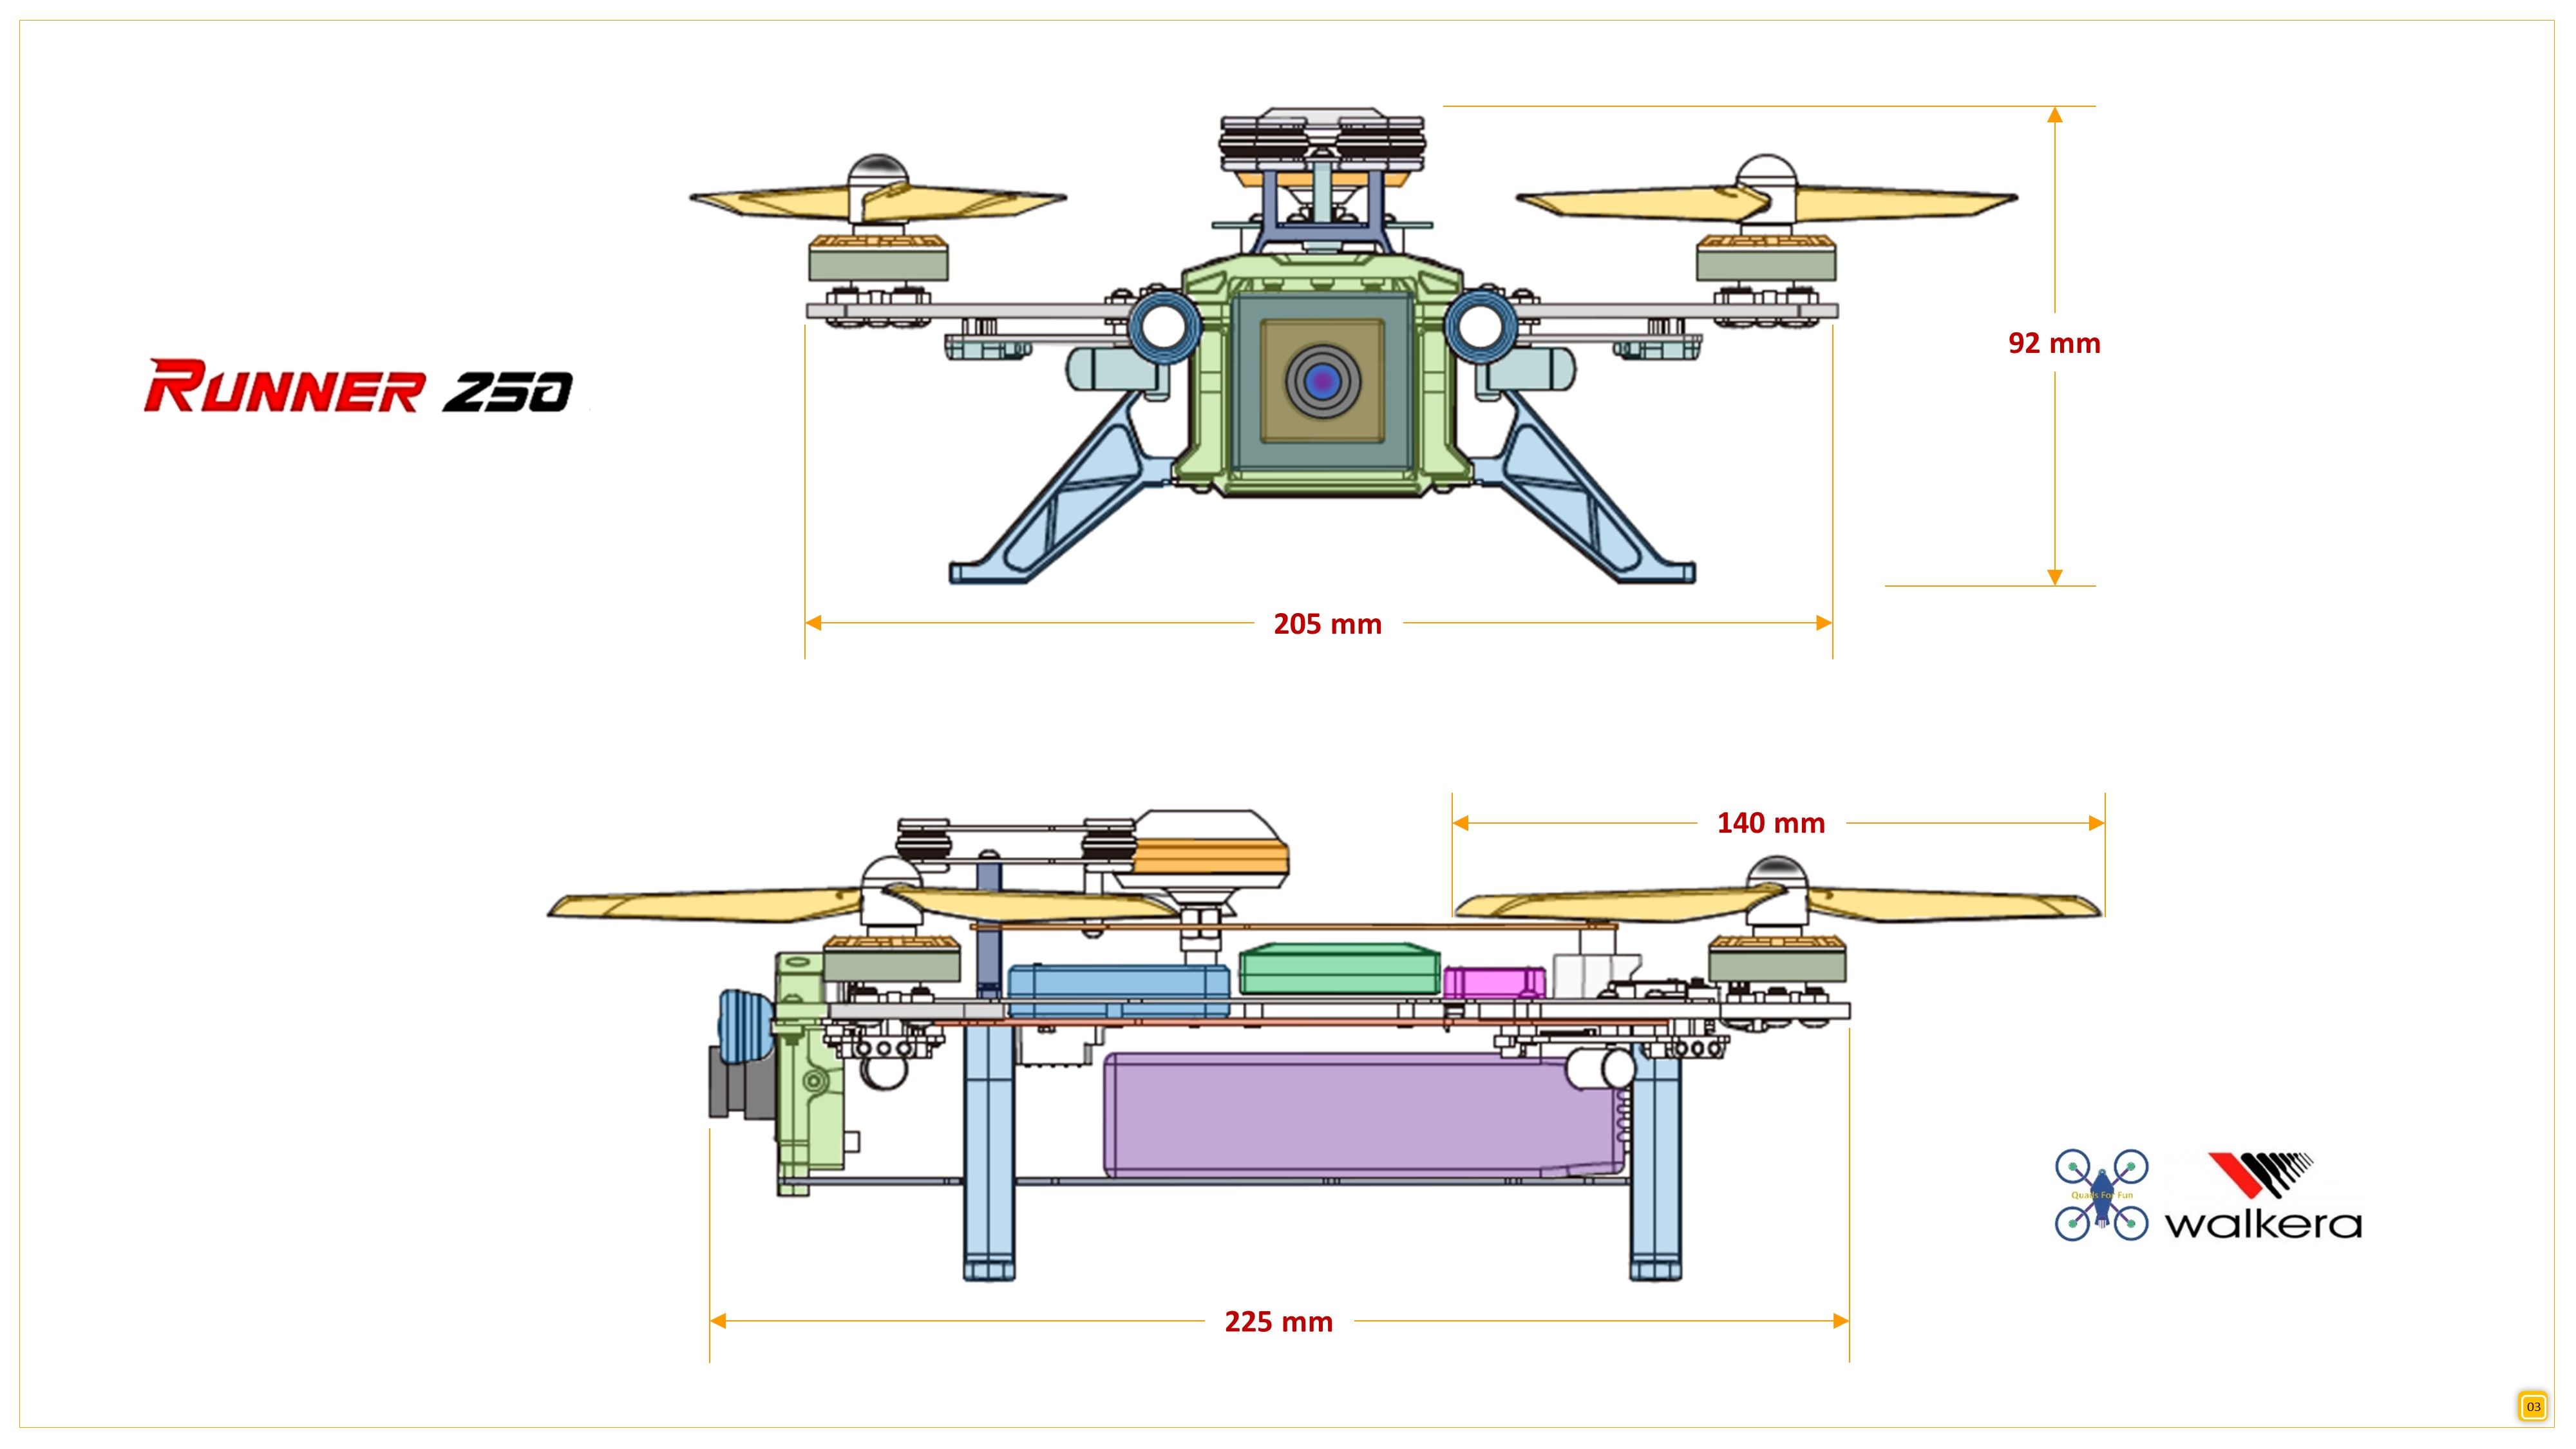 drone bee rotor wiring diagrams drone, quadcopter, multi rotor, quadricopter, multirotor ... ford wiring diagrams free wiring diagrams weebly com #11